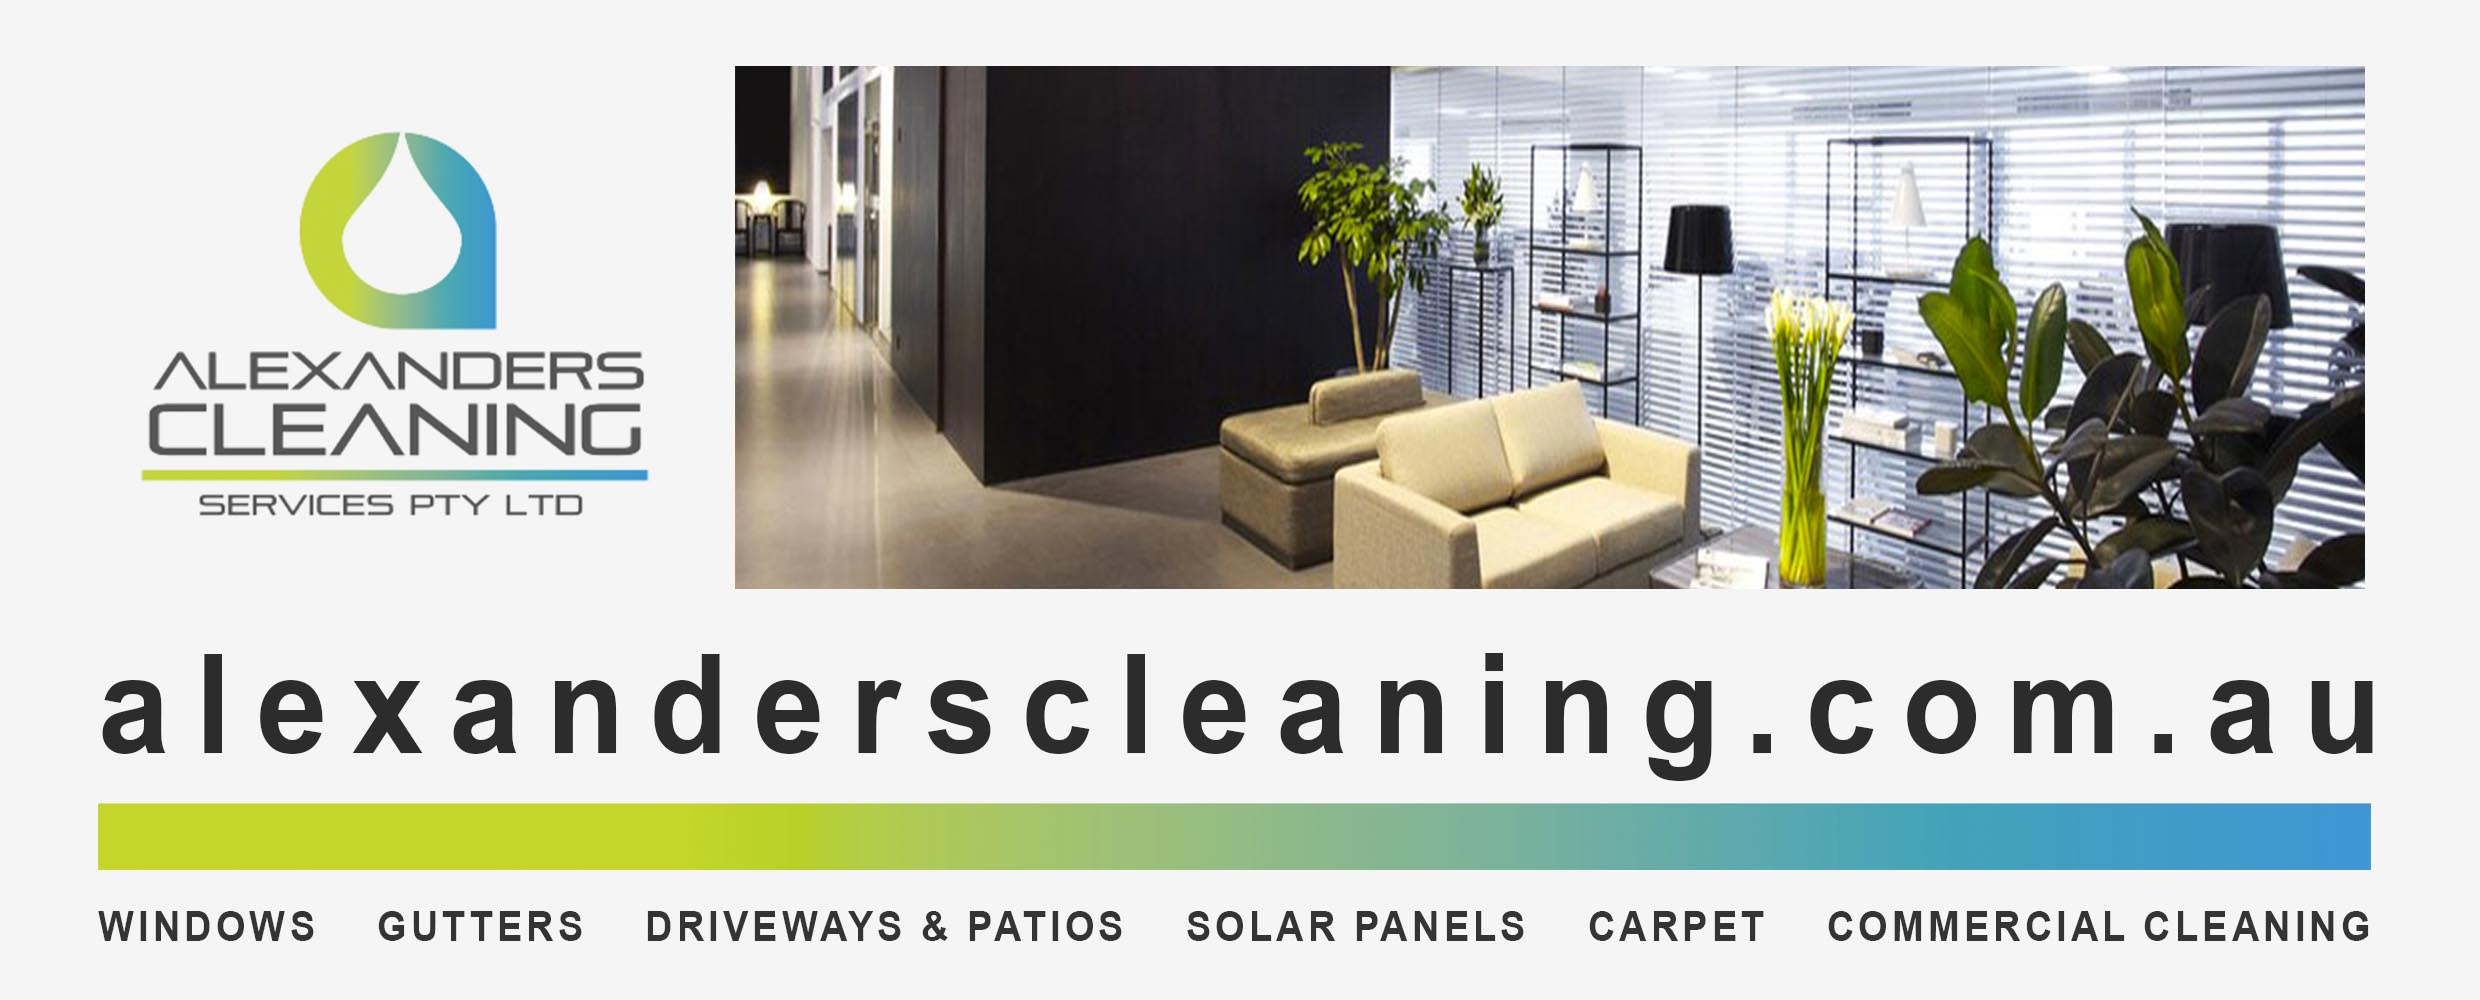 ALEXANDERS-CLEANING - ALEXANDERS-CLEANING-SERVICES